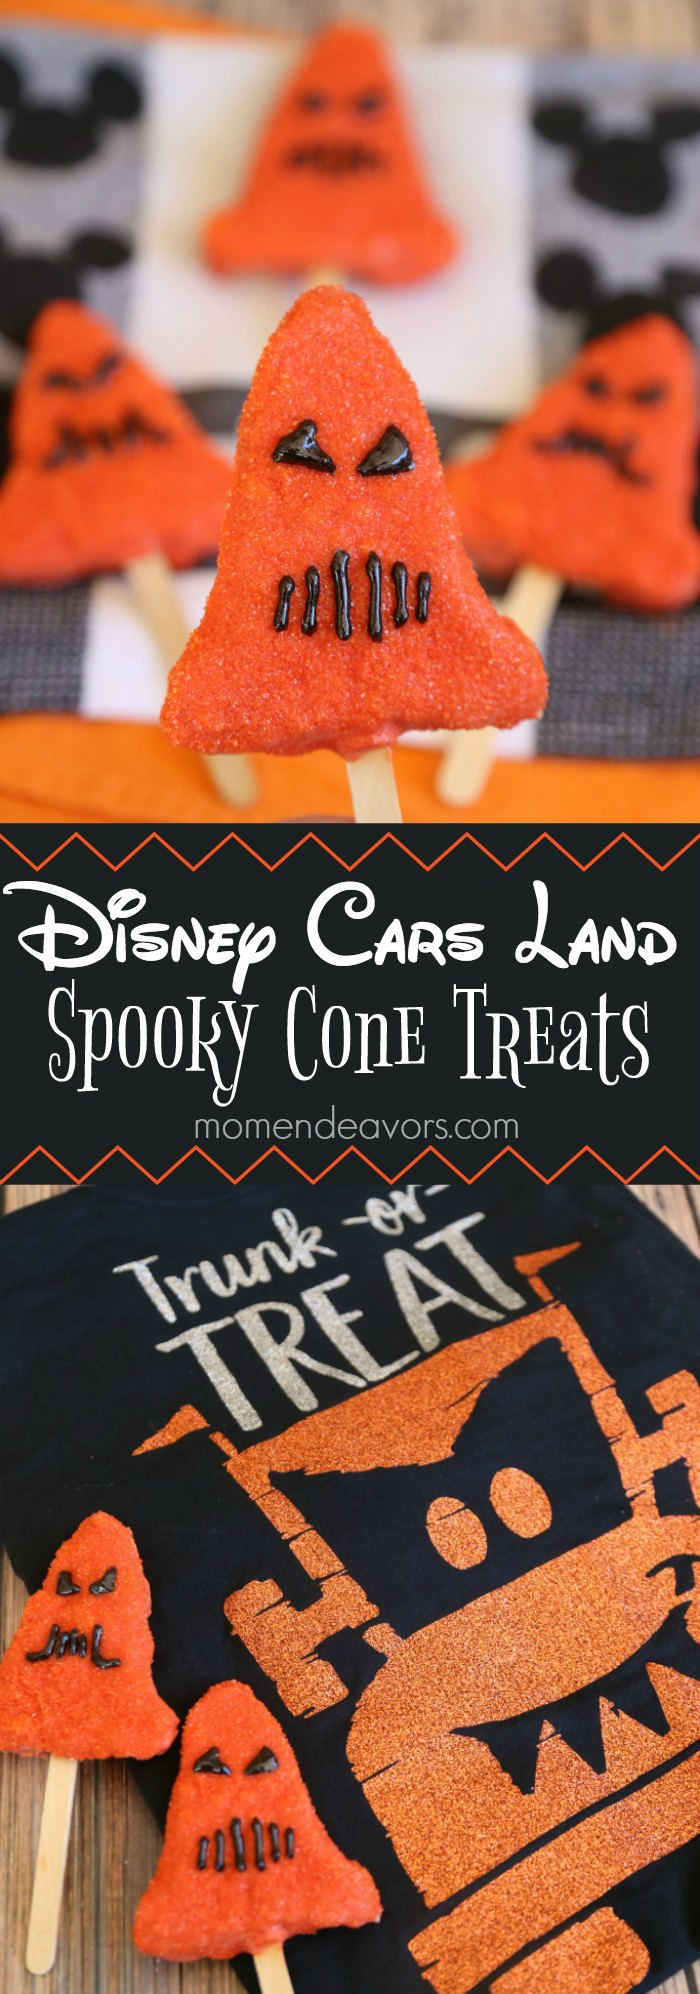 Disney Cars Land Spooky Cone Haul-O-Ween Treats